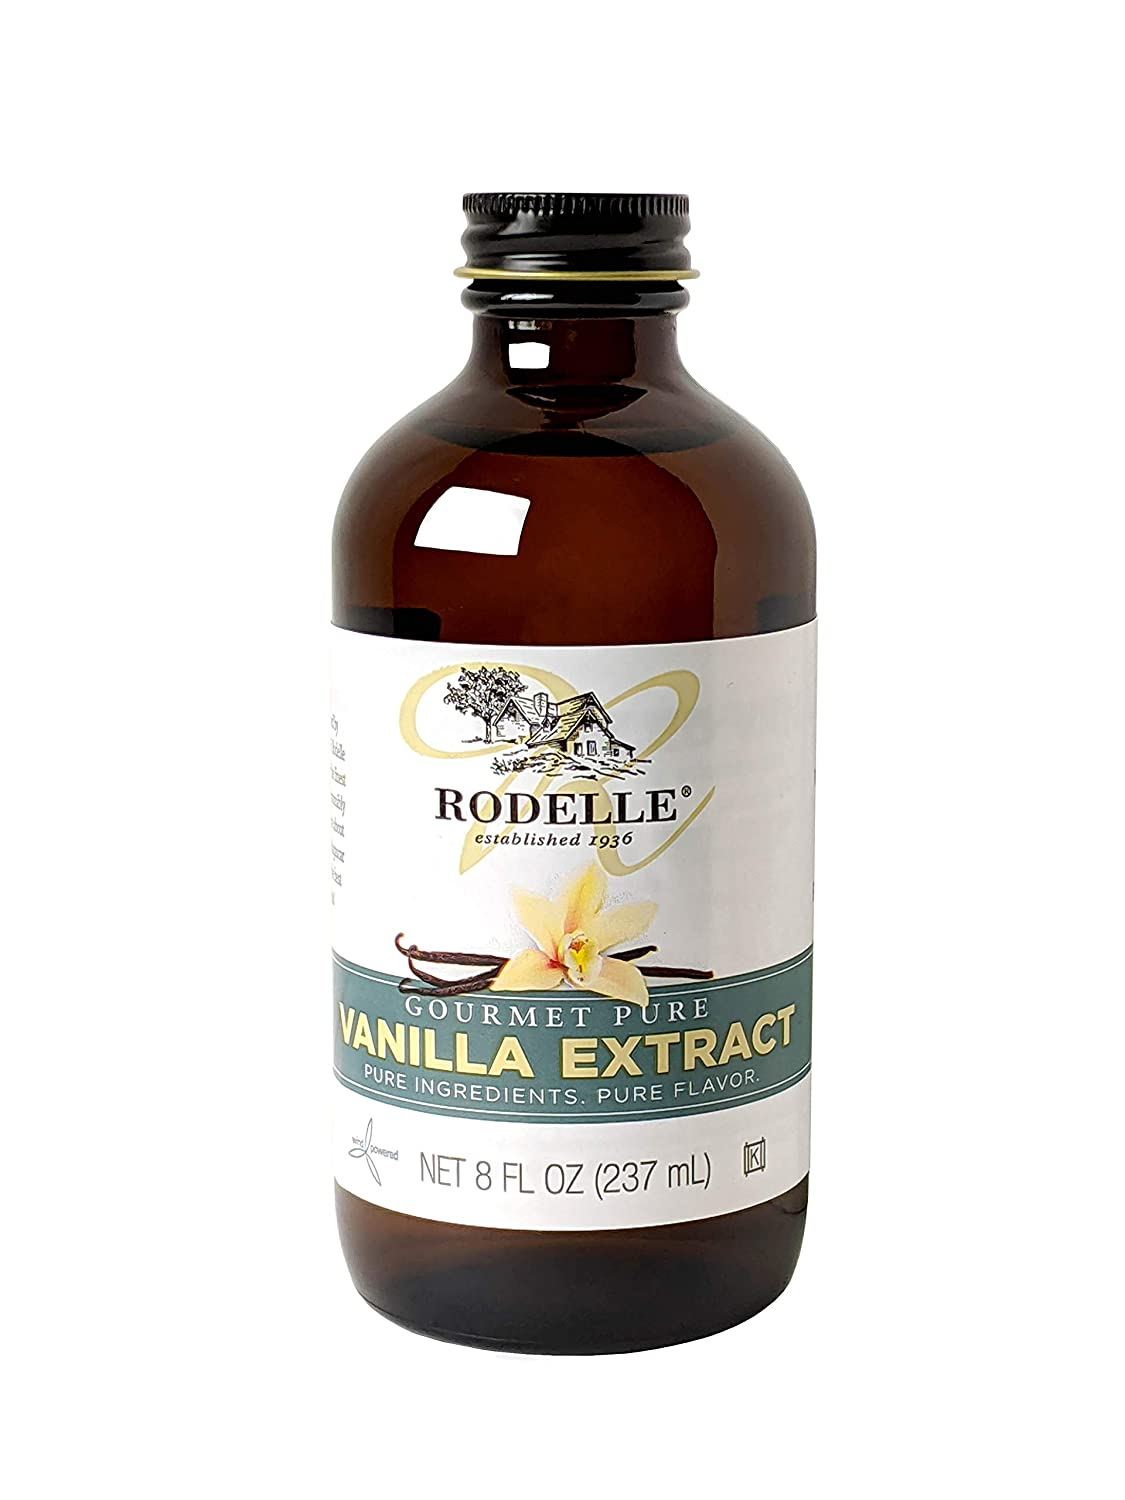 Rodelle Price reduction Max 78% OFF Gourmet Pure Vanilla Oz Extract 8